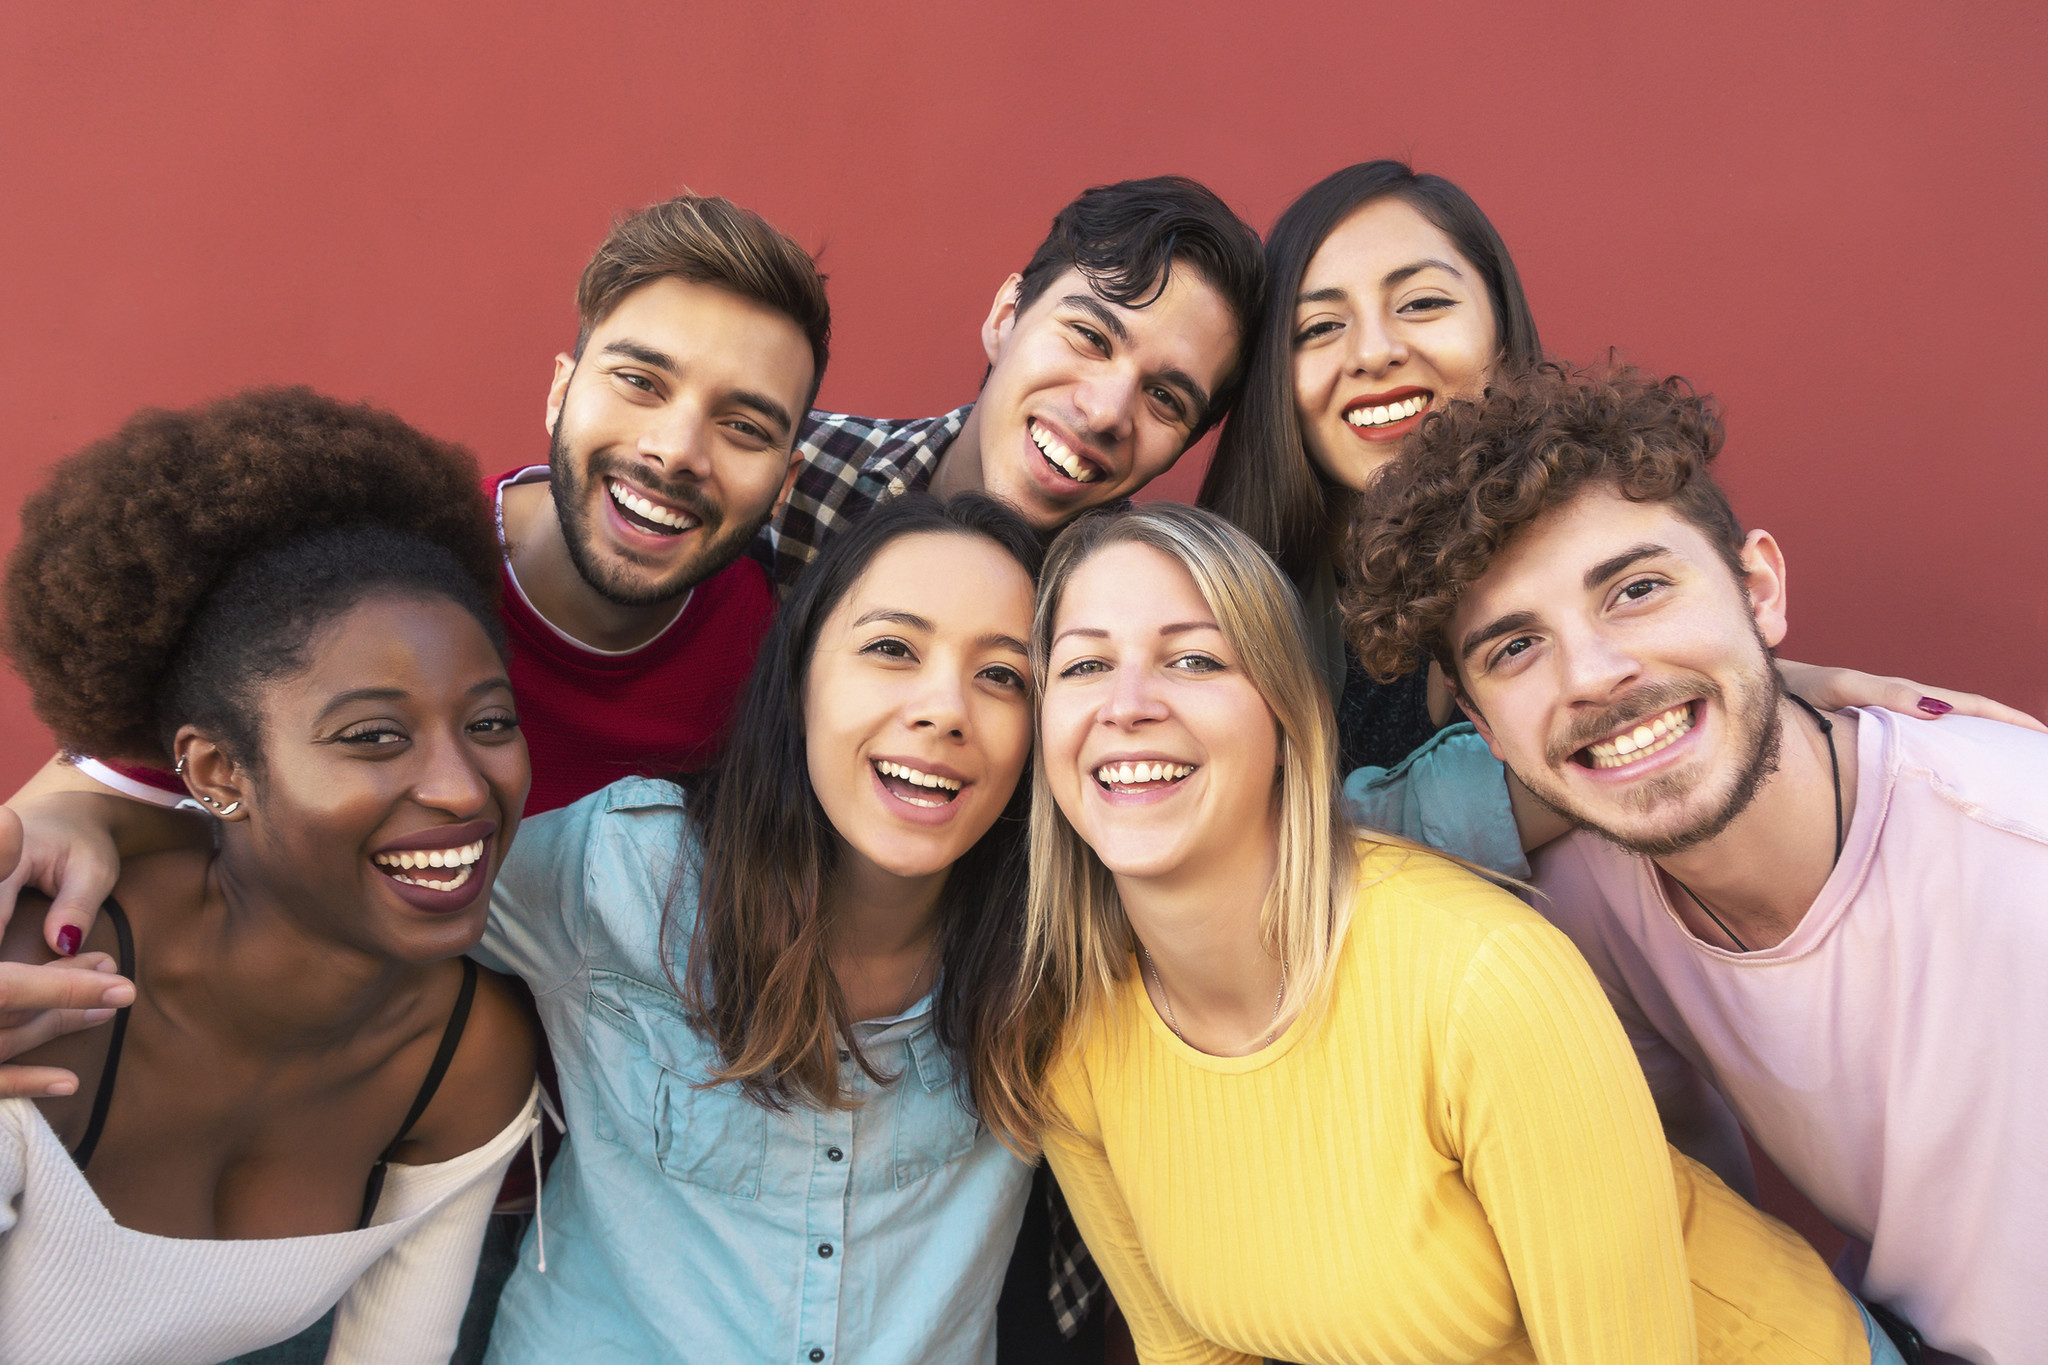 A mulit-cultural group of young people